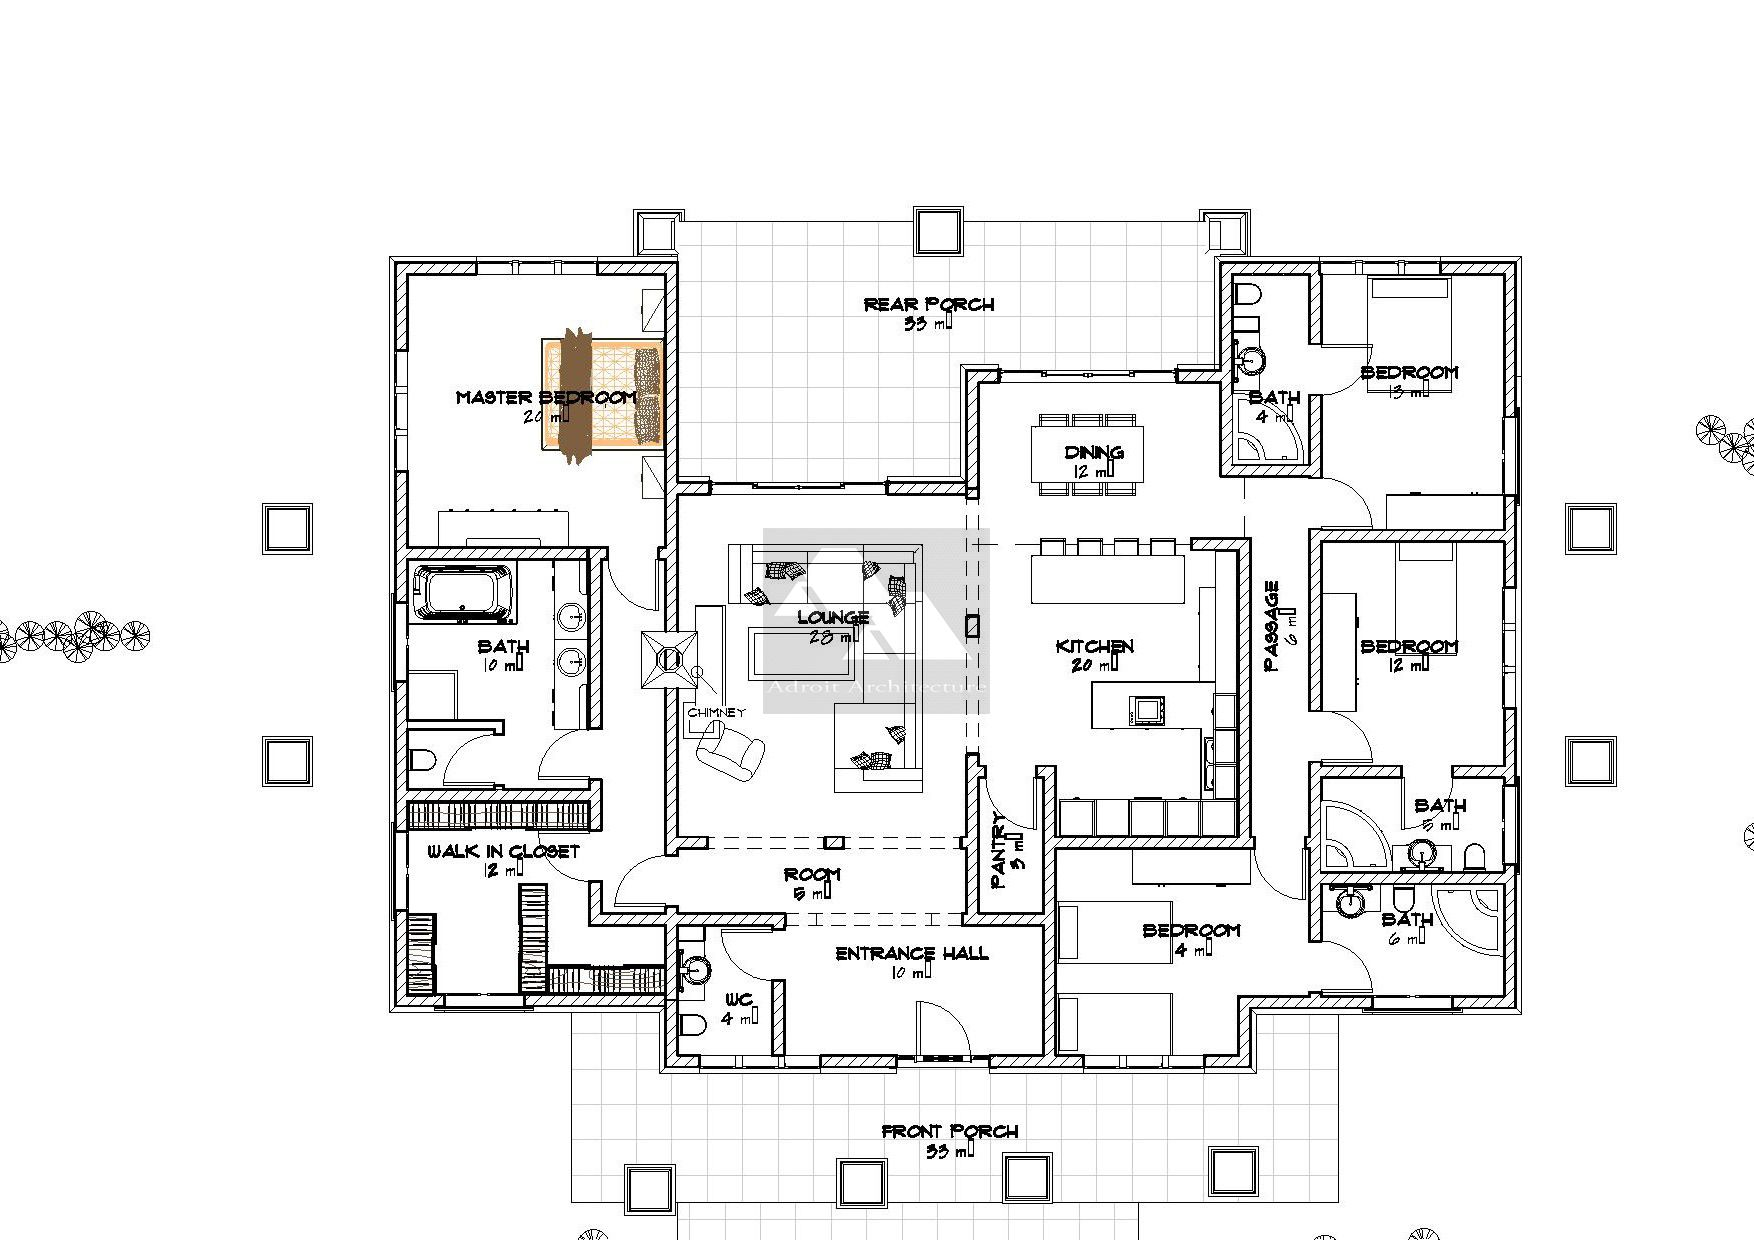 12 bedroom bungalow house plan in Kenya  Bungalow floor plans